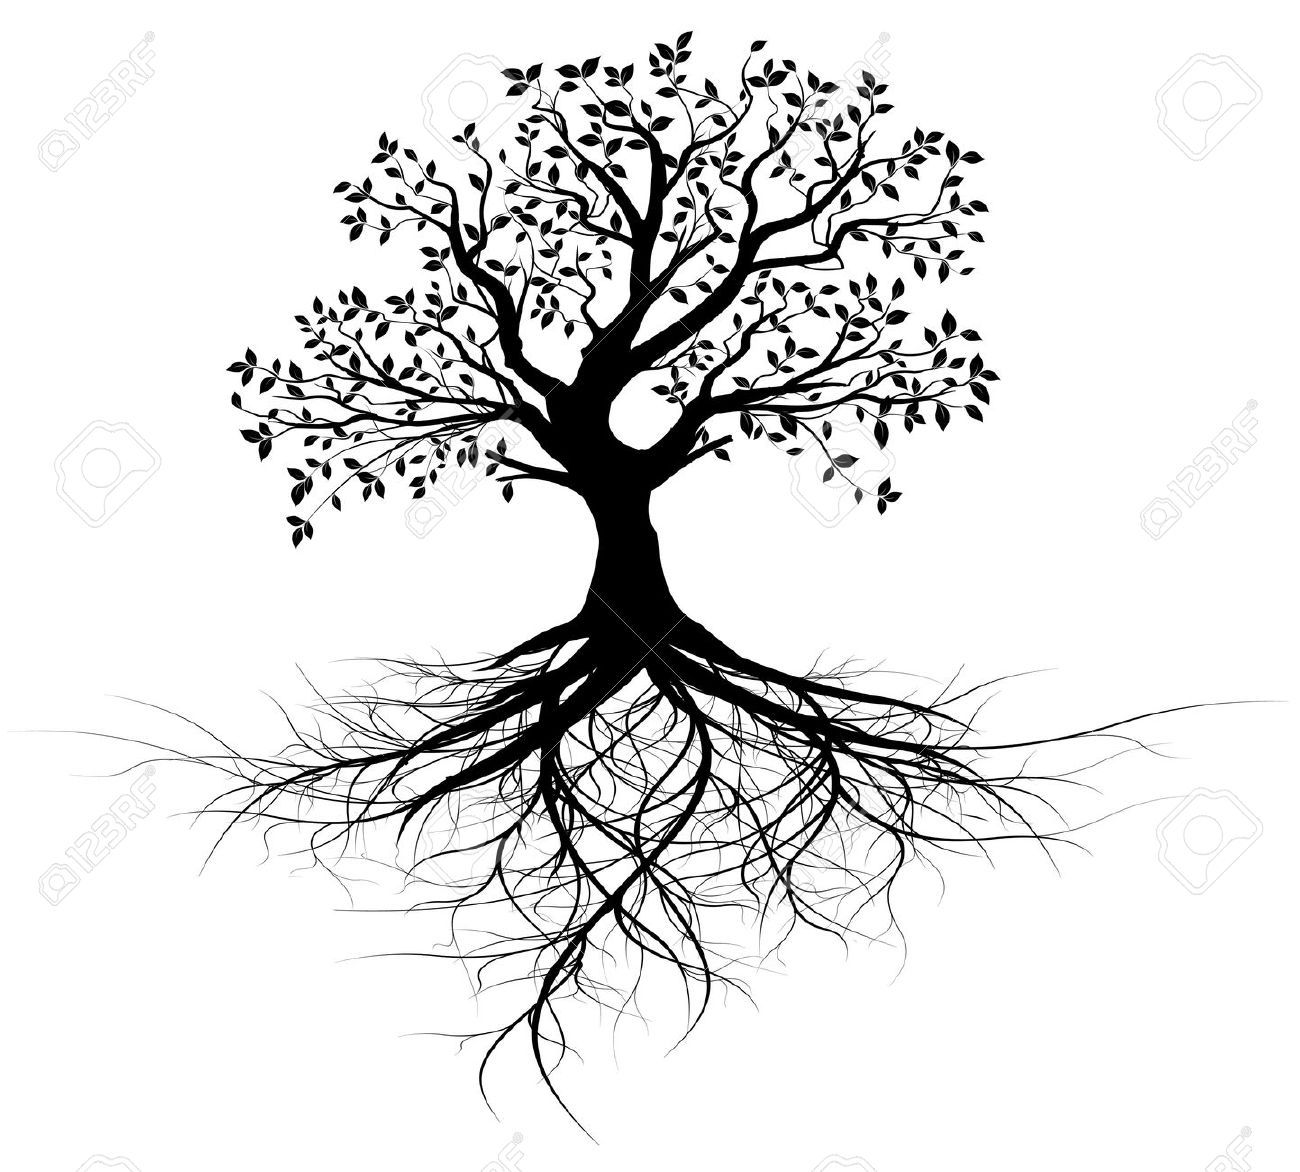 Clipart tree of life free.